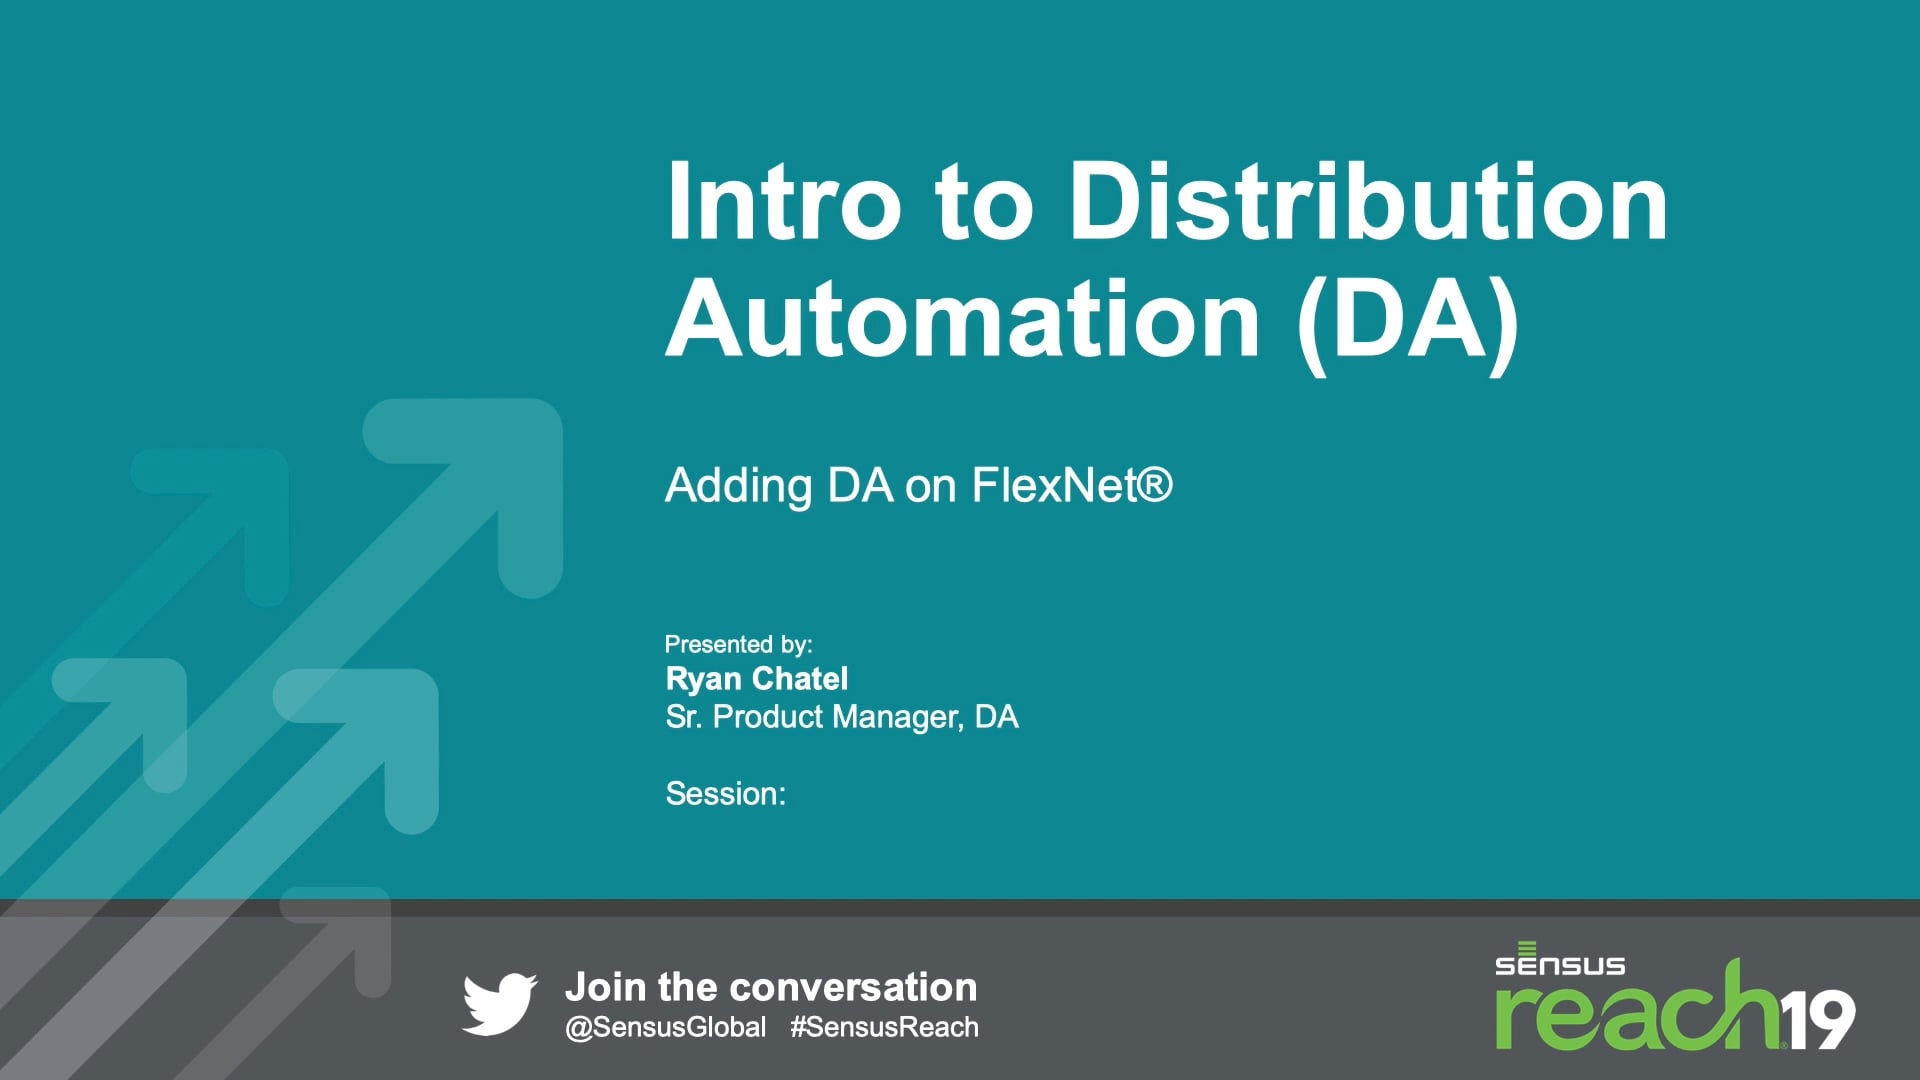 Introduction to Distribution Automation (DA)